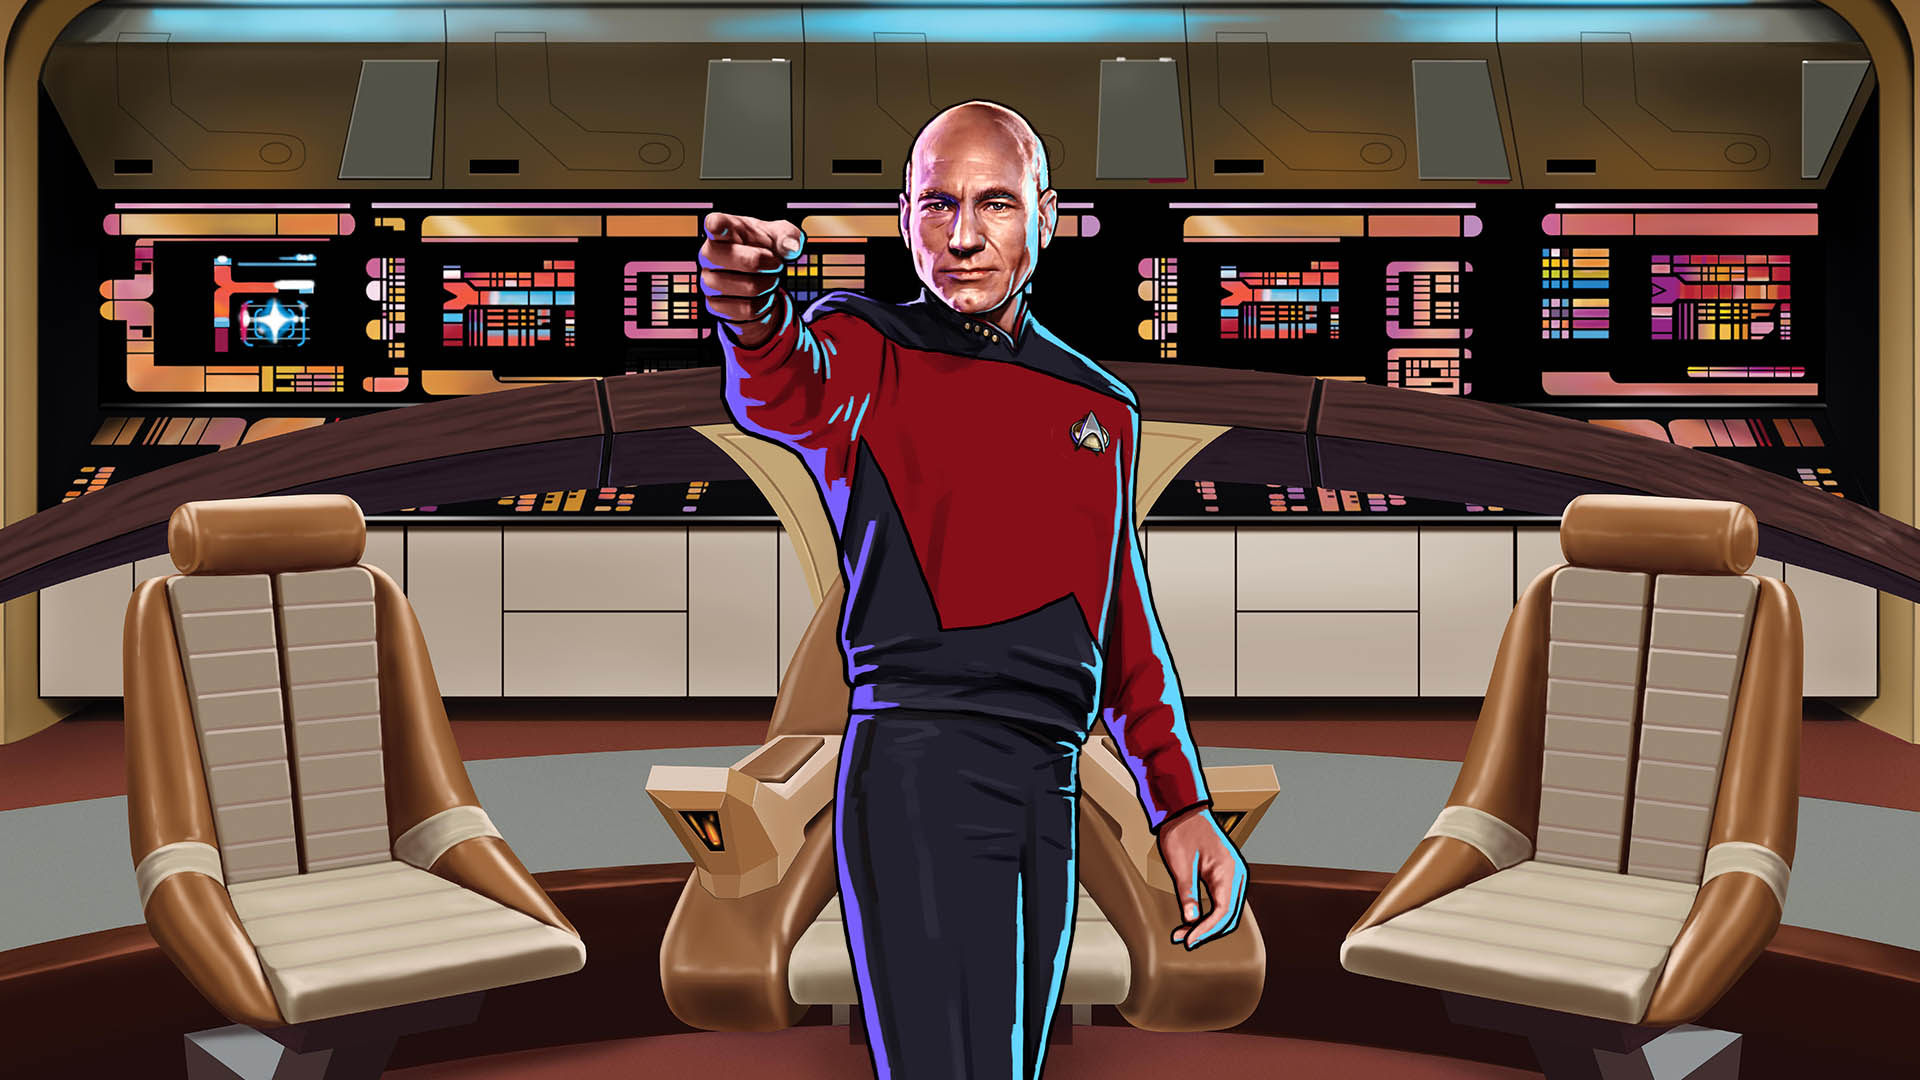 Showcase star trek timelines - Steam card exchange ...